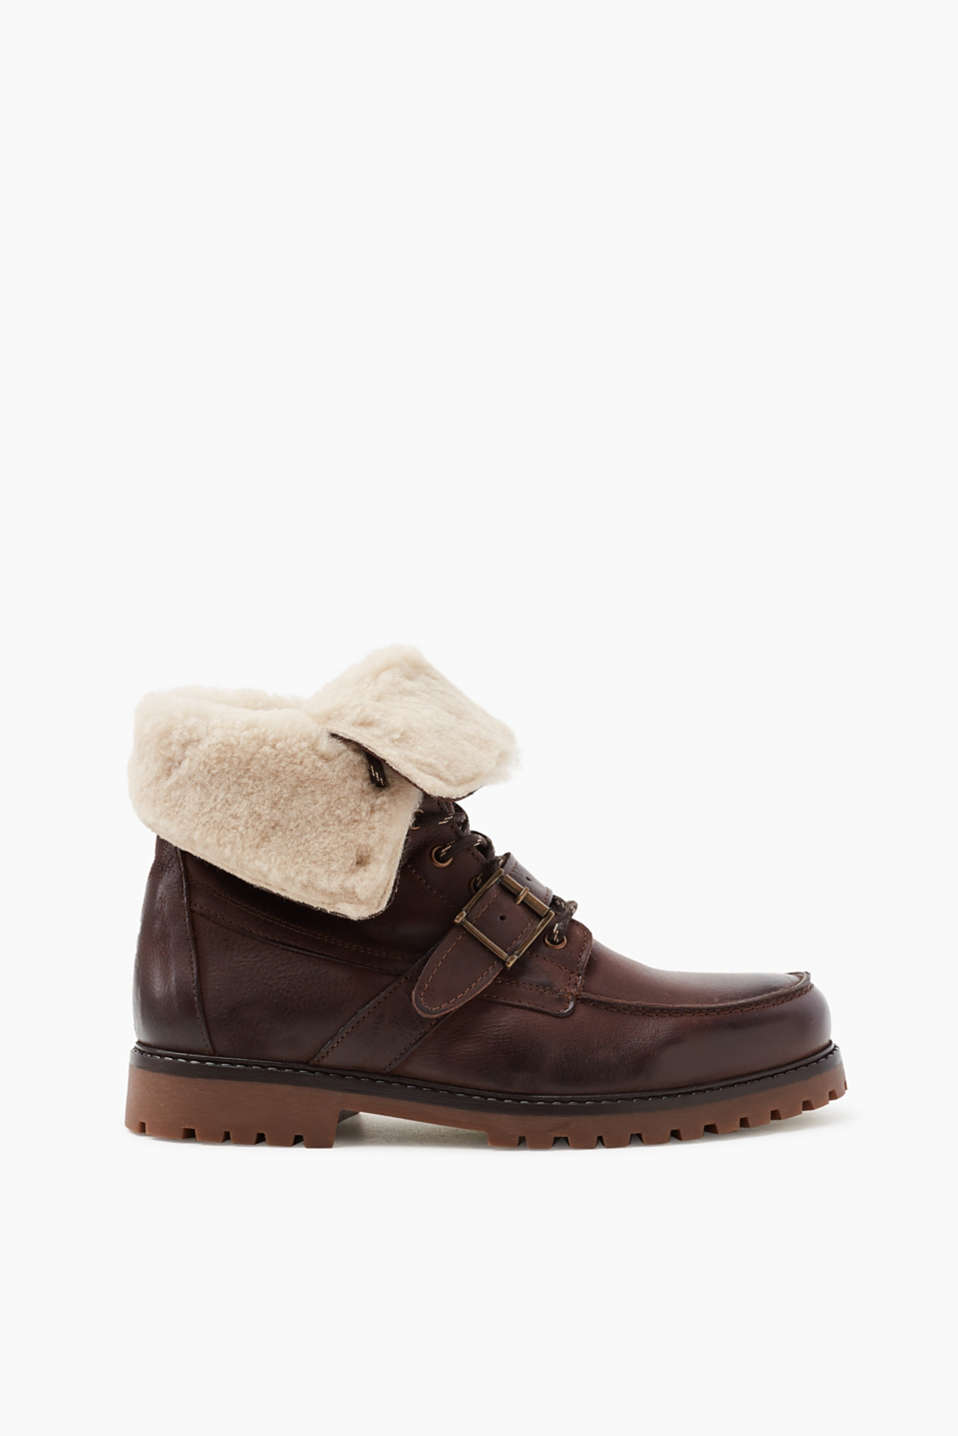 For windy and bad weather! The wool lining inside these leather, lace-up boots guarantees warm feet throughout winter.